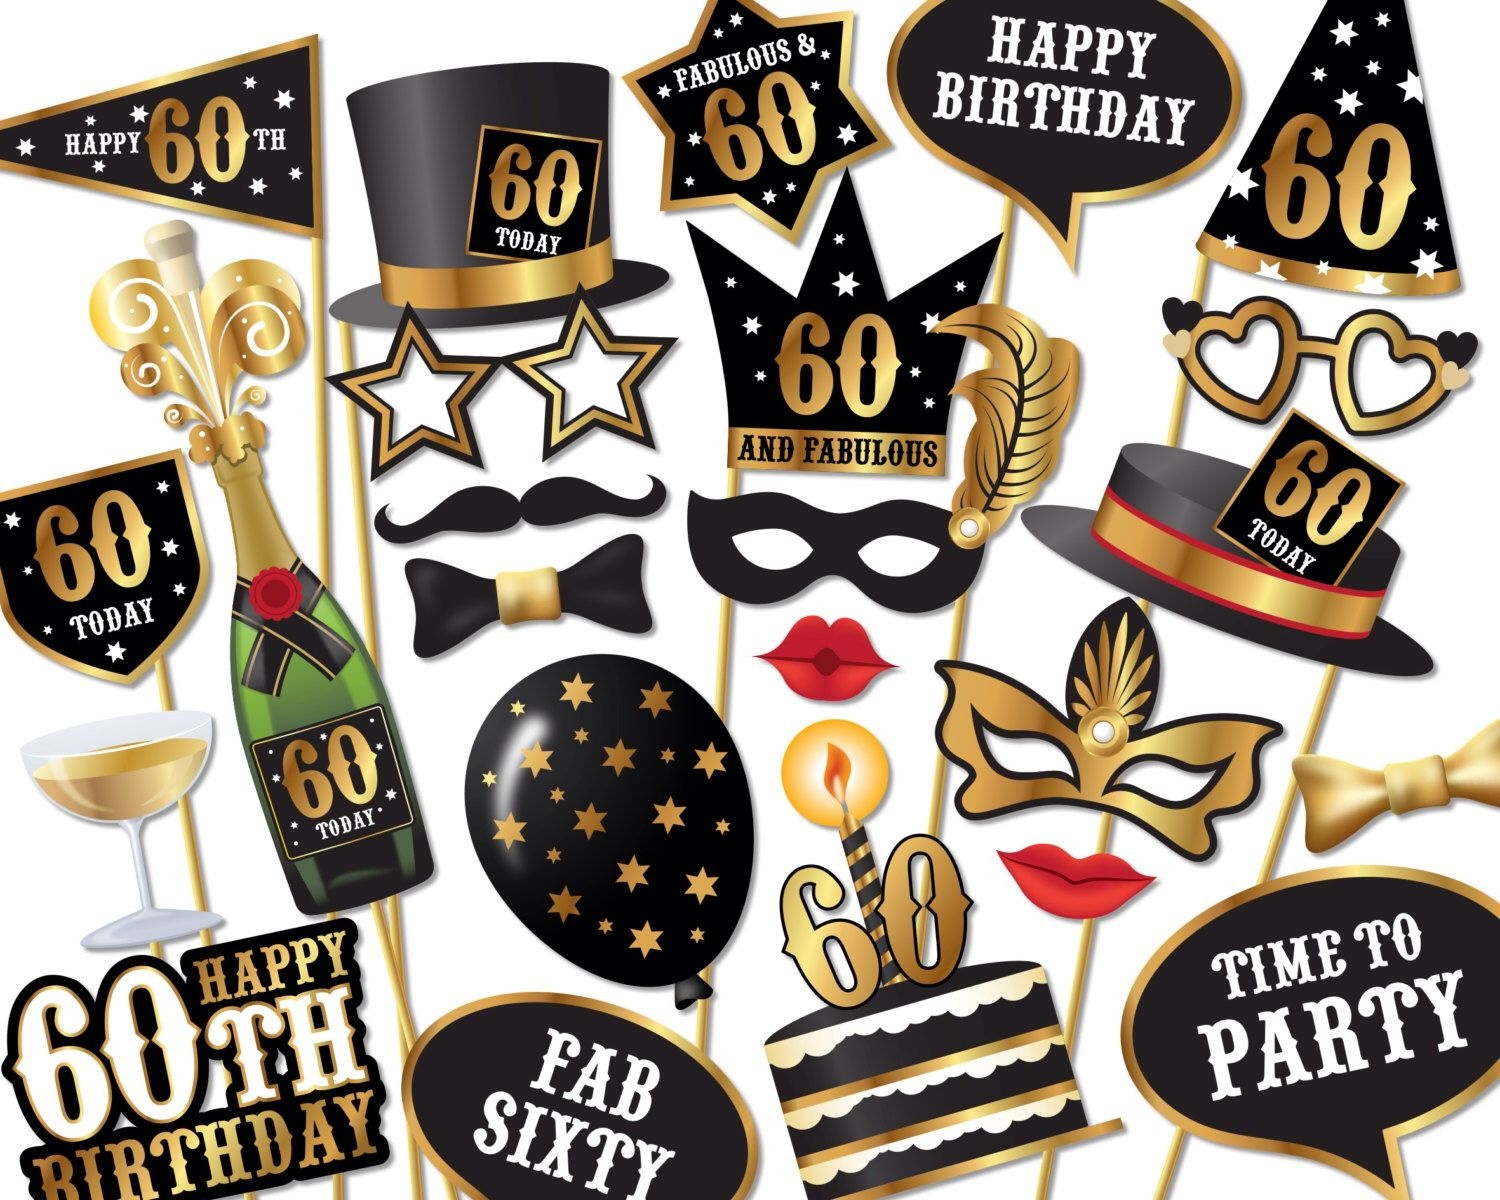 60Th Birthday Photo Booth Props - Instant Download Printable Pdf - Free Printable 30Th Birthday Photo Booth Props